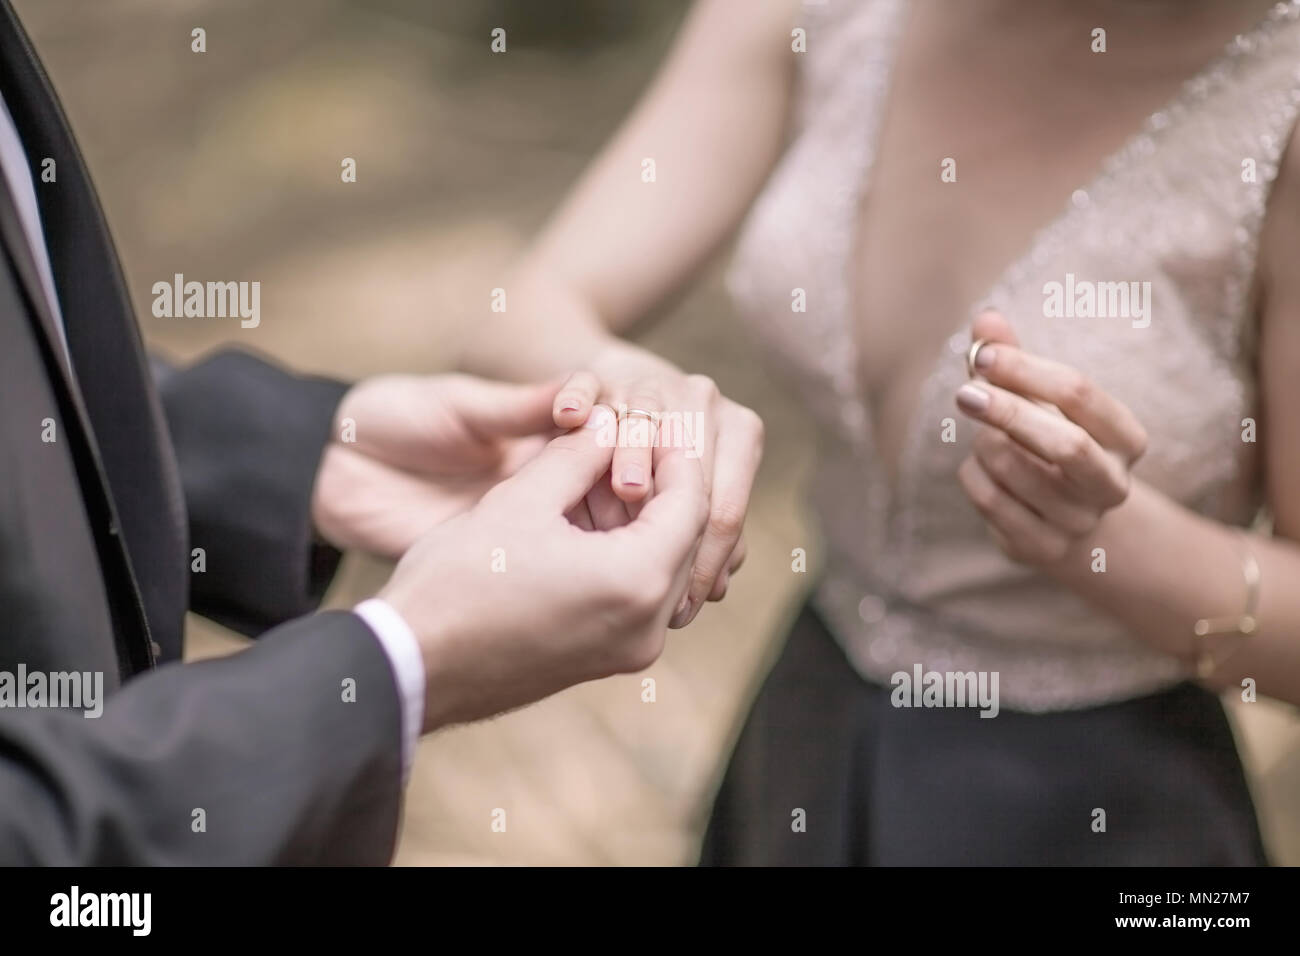 symbol of the beginning of family life: the couple exchange wedding rings - Stock Image